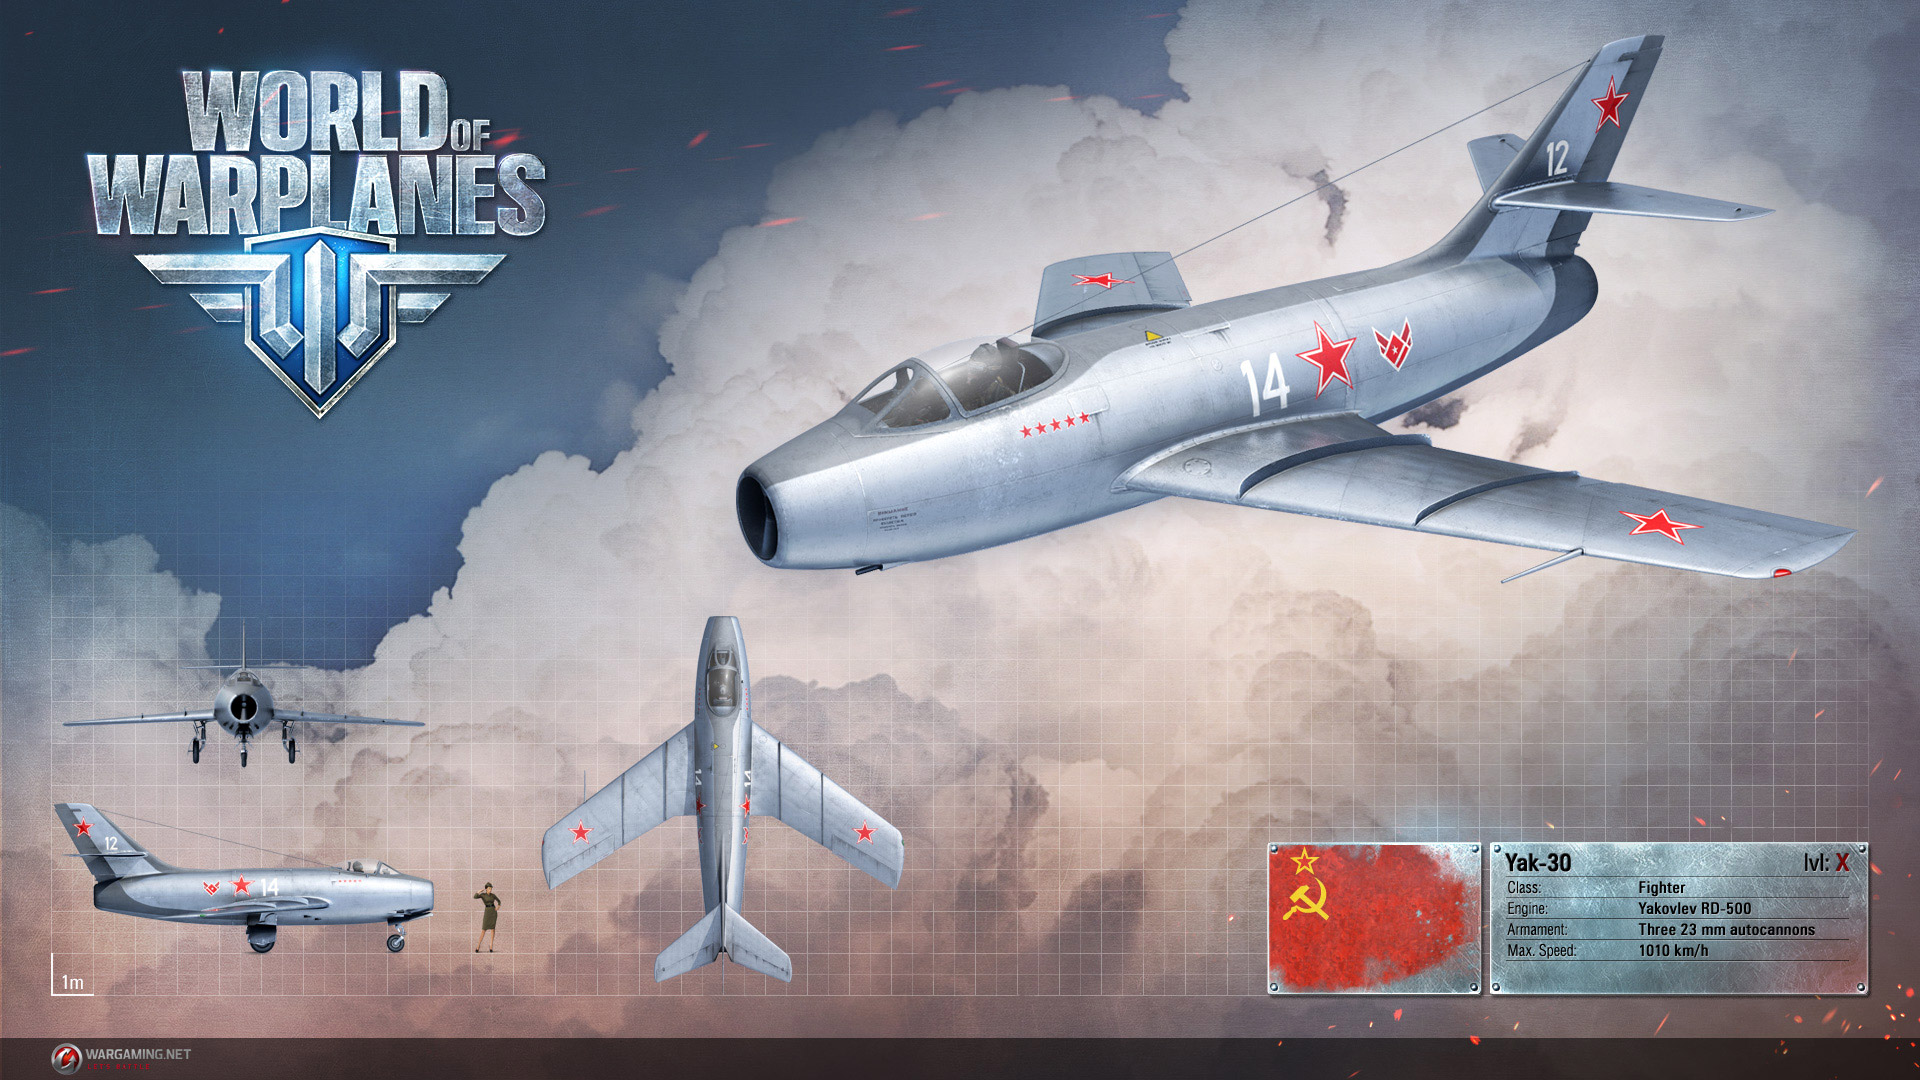 Free World of Warplanes Wallpaper in 1920x1080